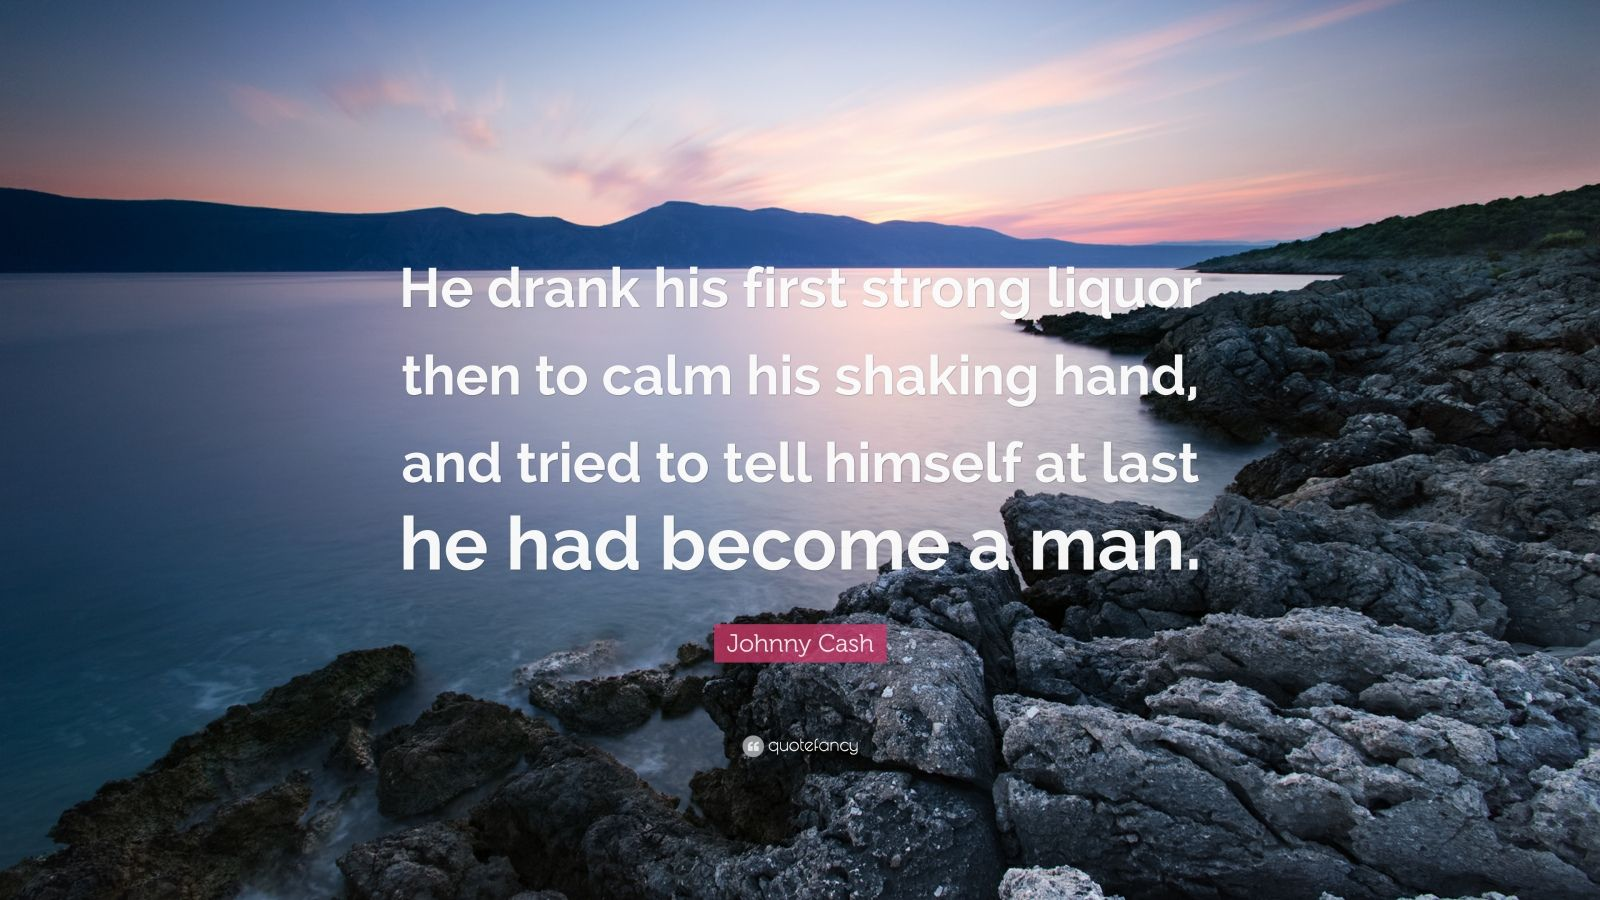 "Johnny Cash Quote: ""He drank his first strong liquor then to calm his shaking hand, and tried to tell himself at last he had become a man."""